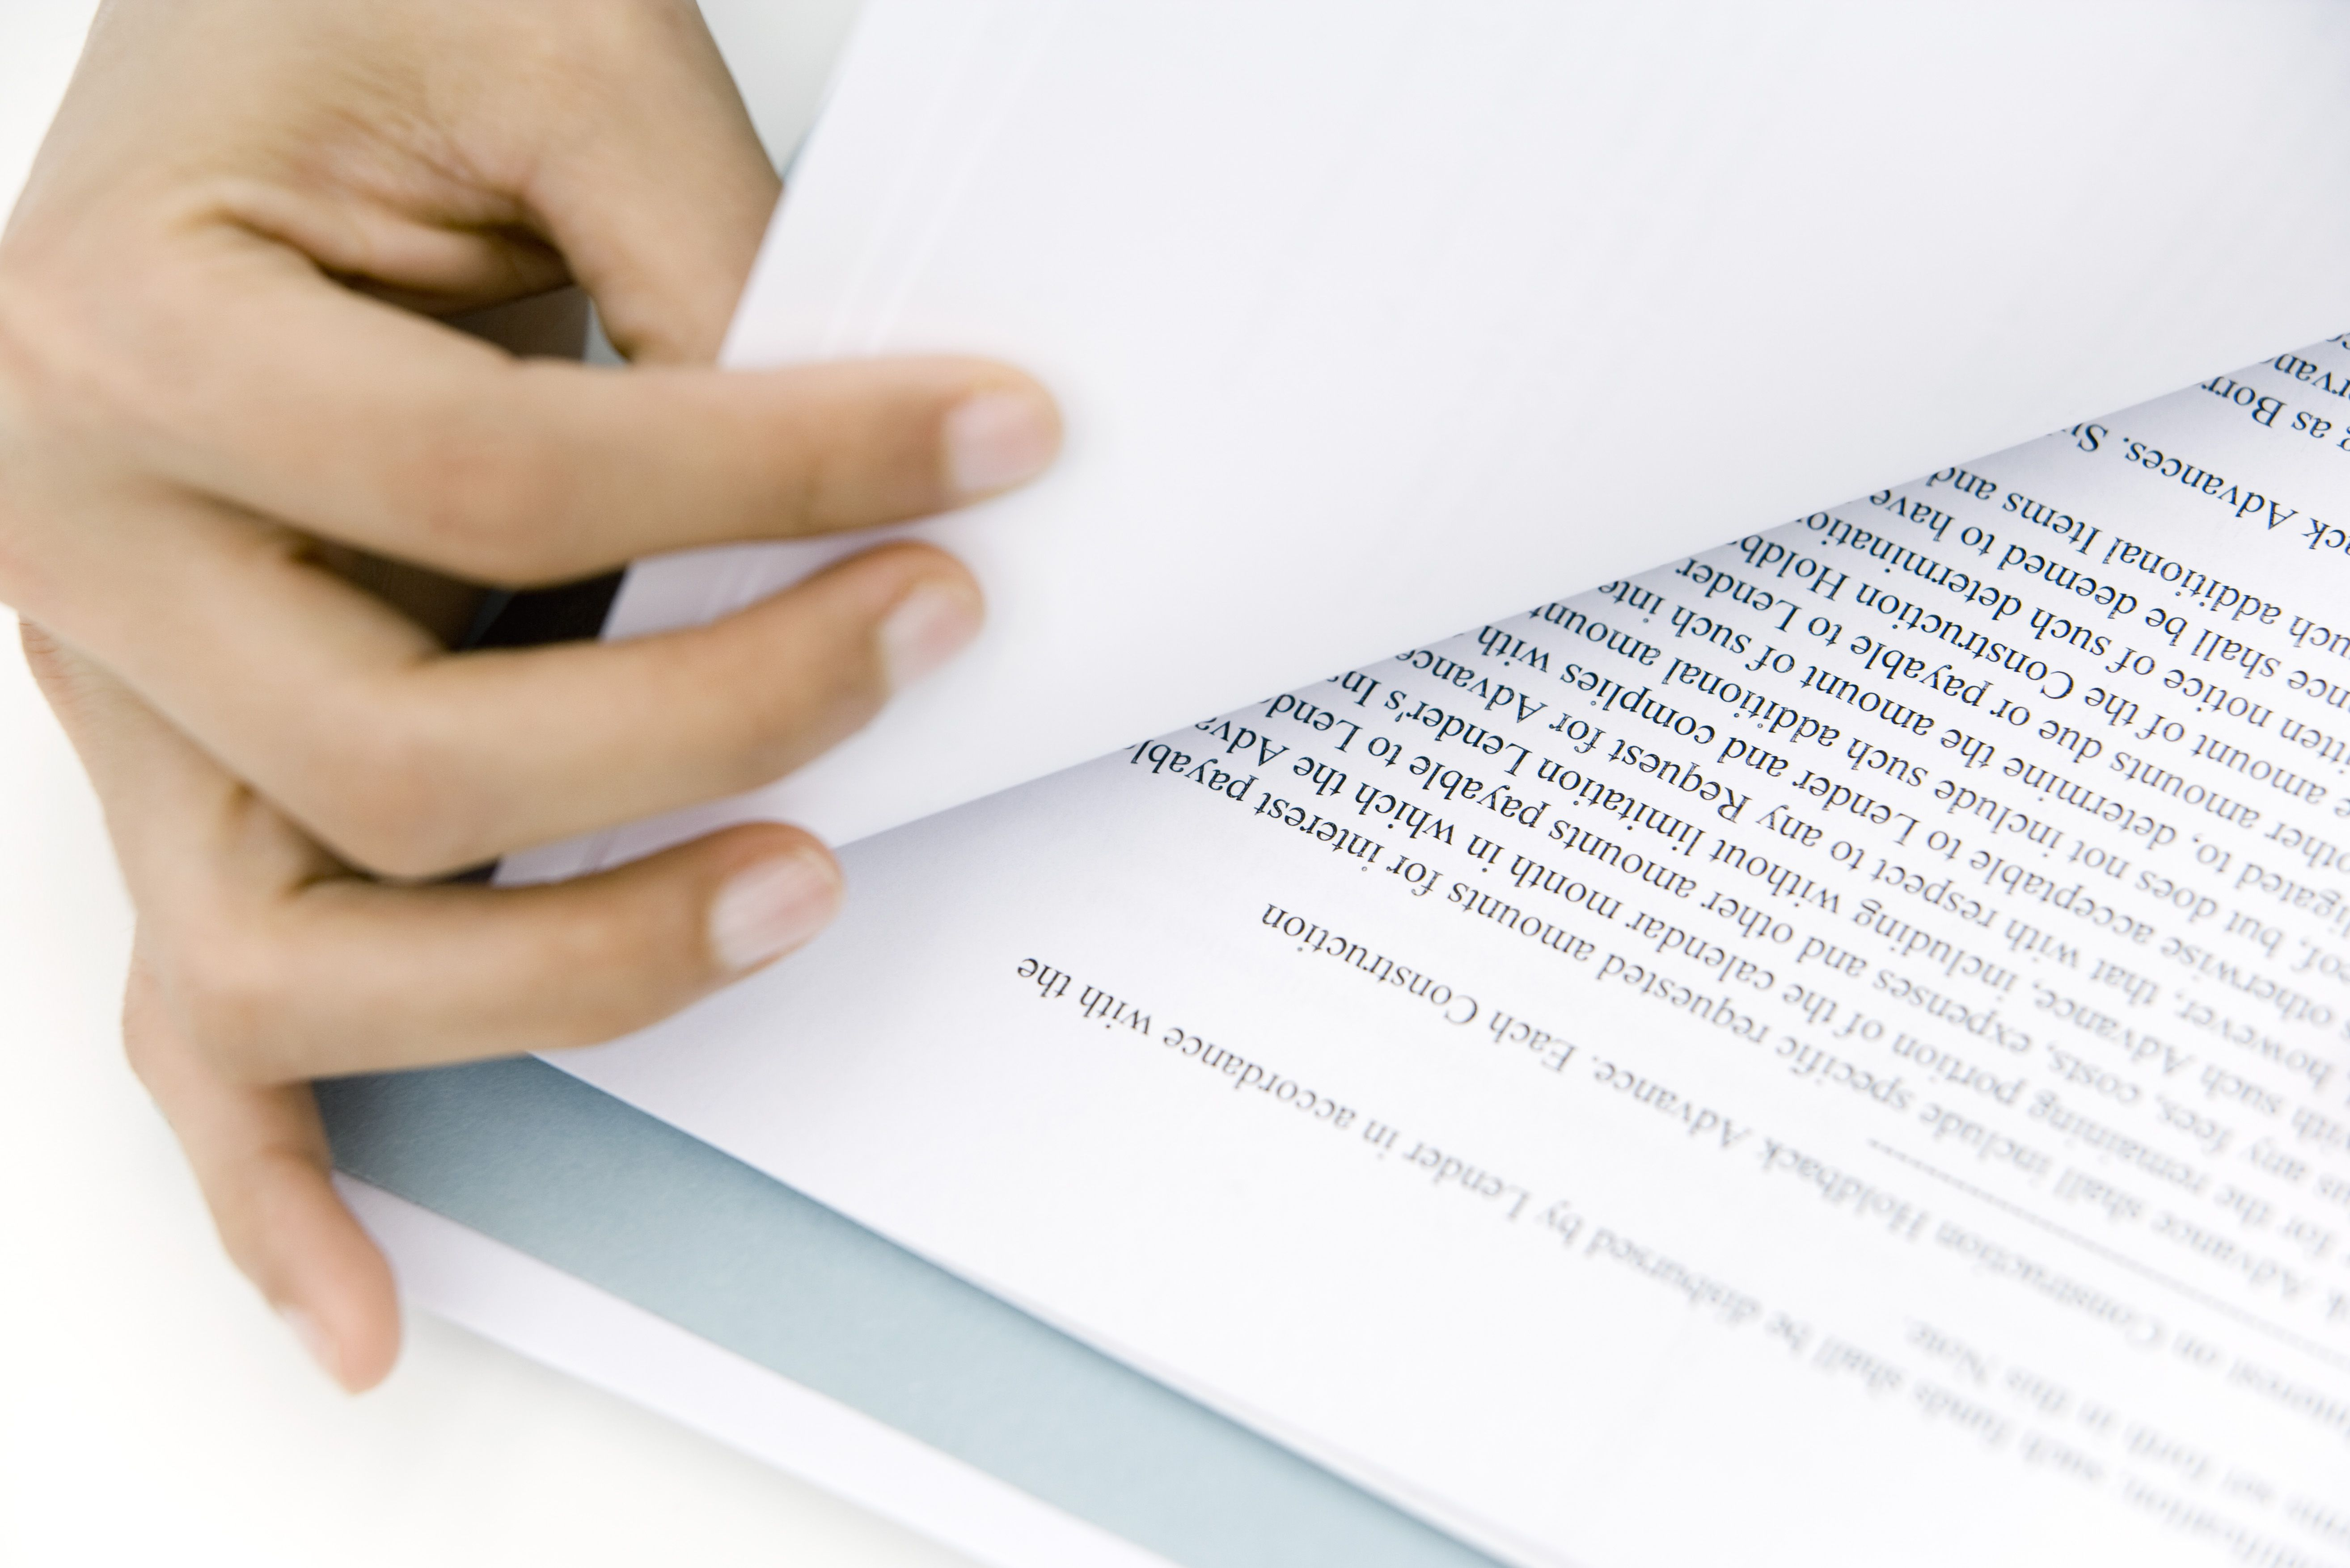 Hand turning document page, close-up